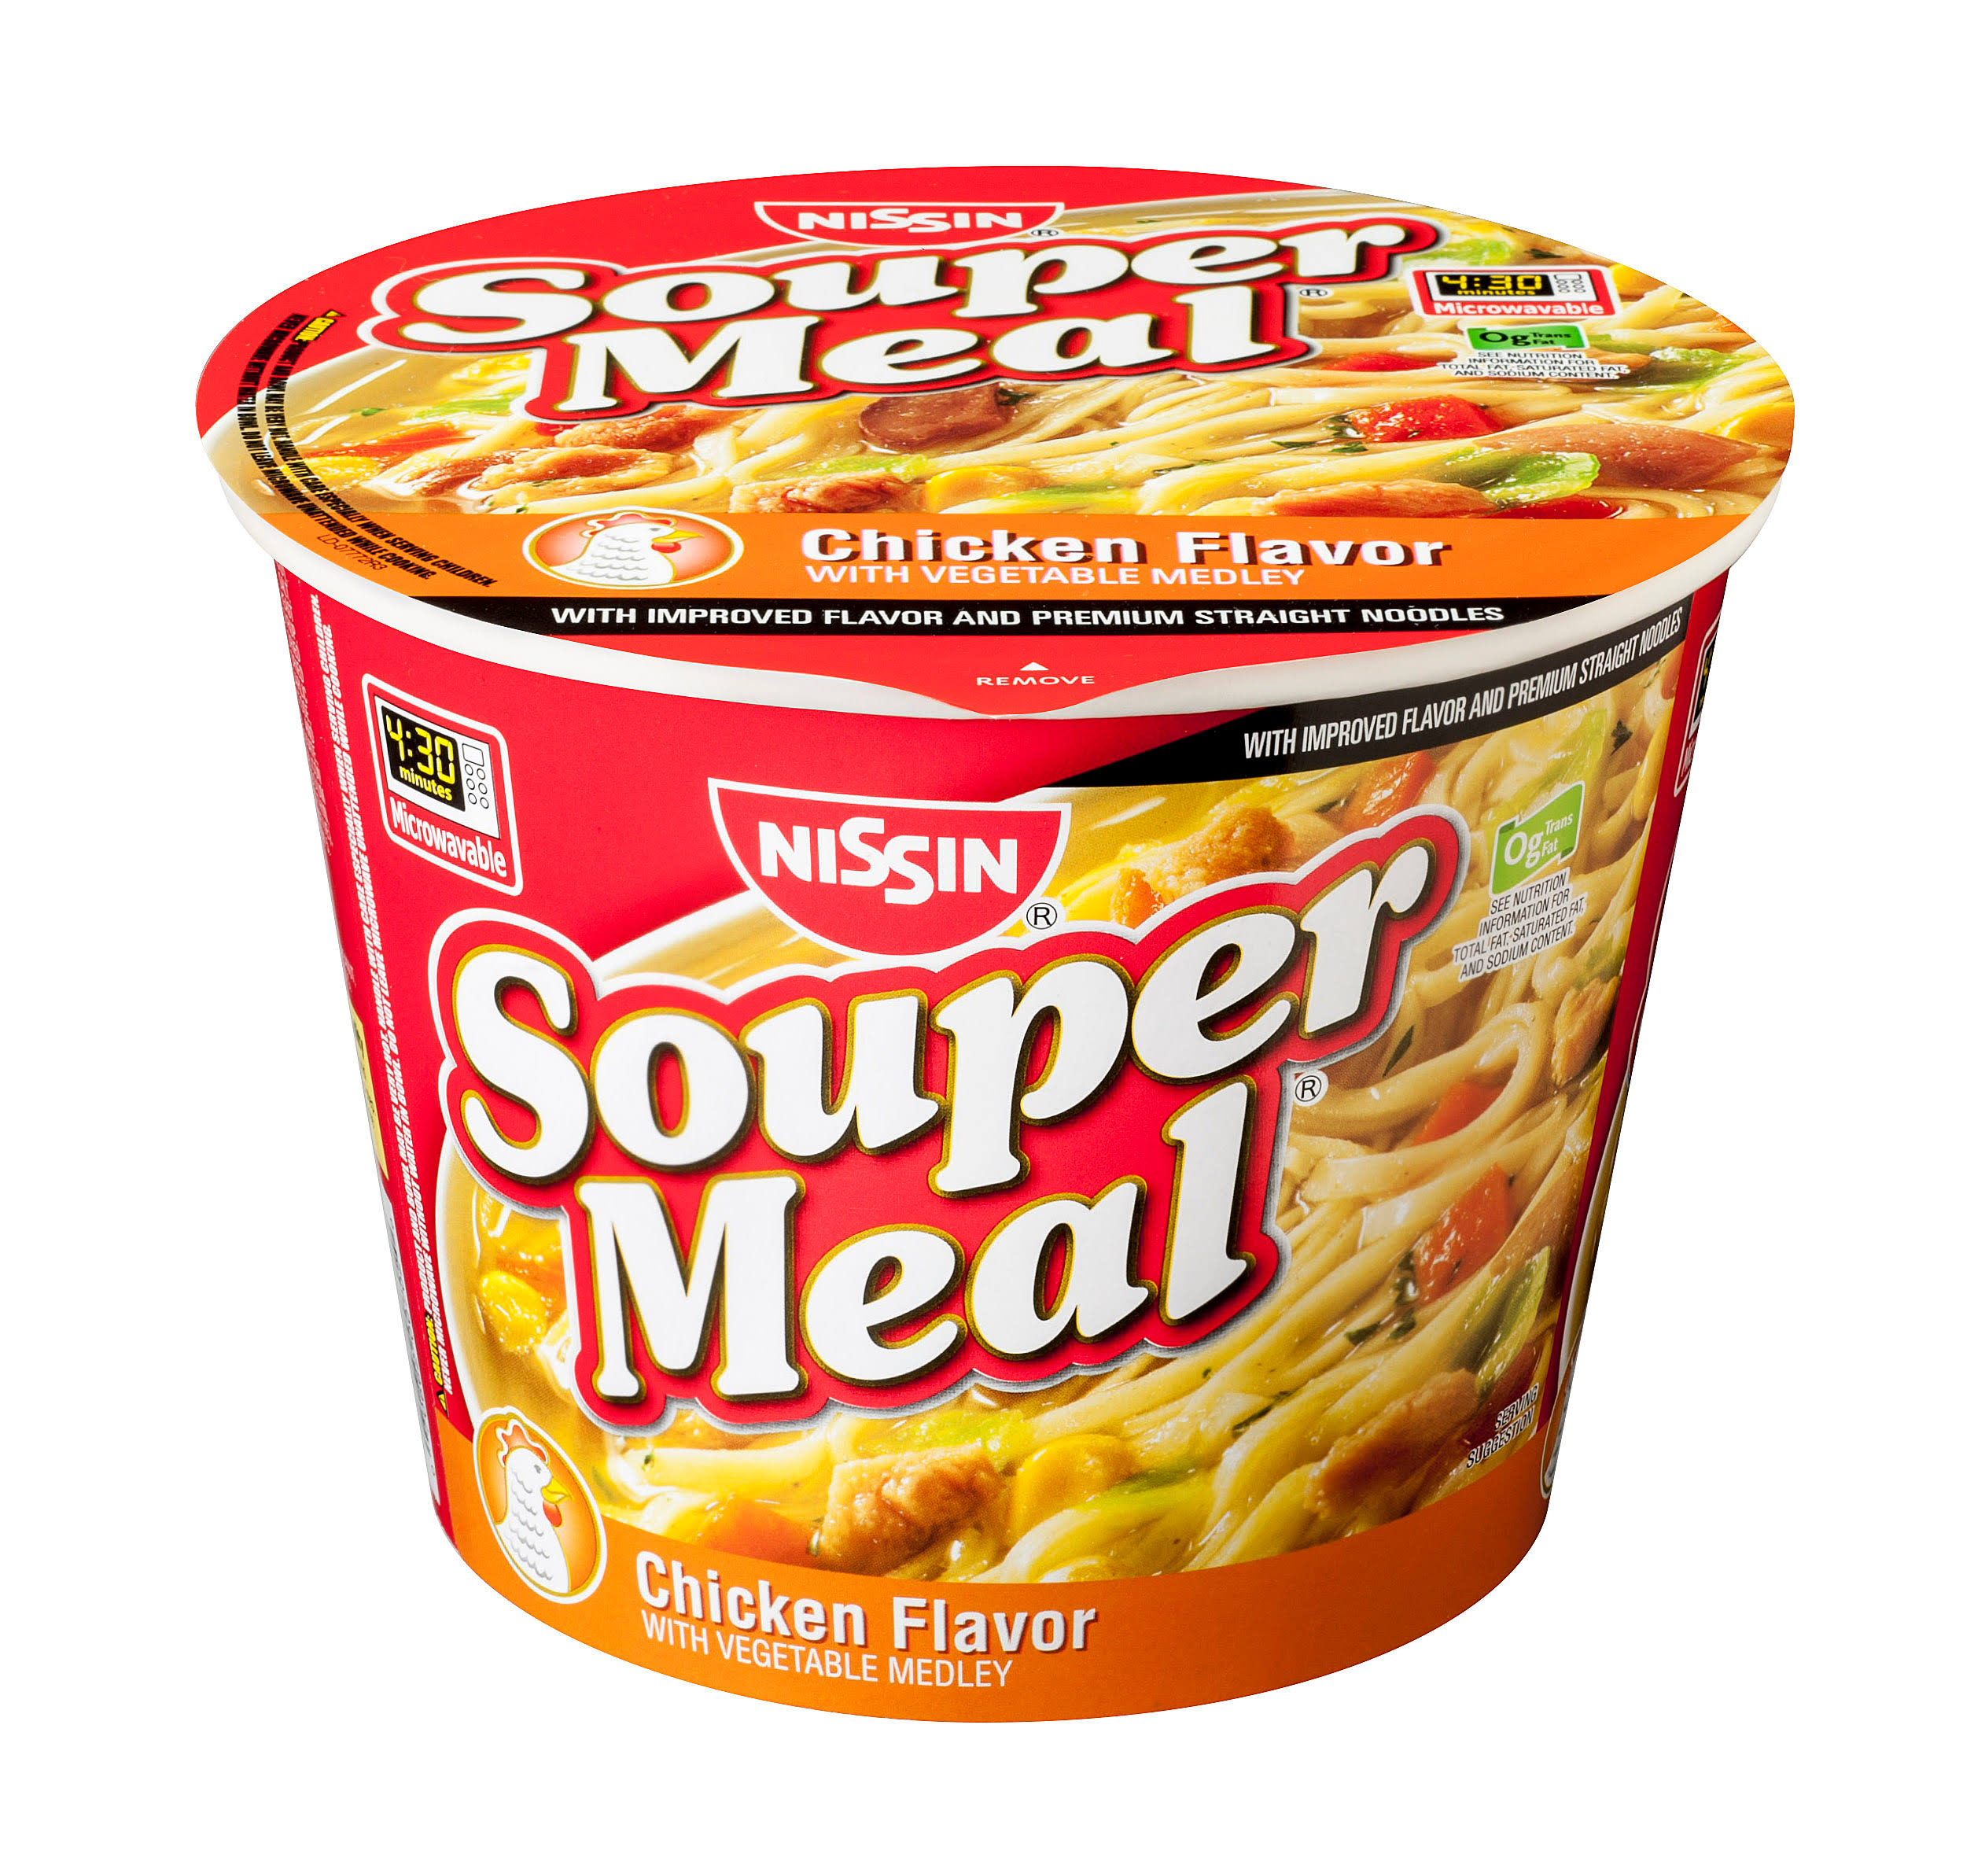 Nissin Souper Meal Ramen Noodle Soup - Chicken Flavor with Vegetable Medley, 4.3oz